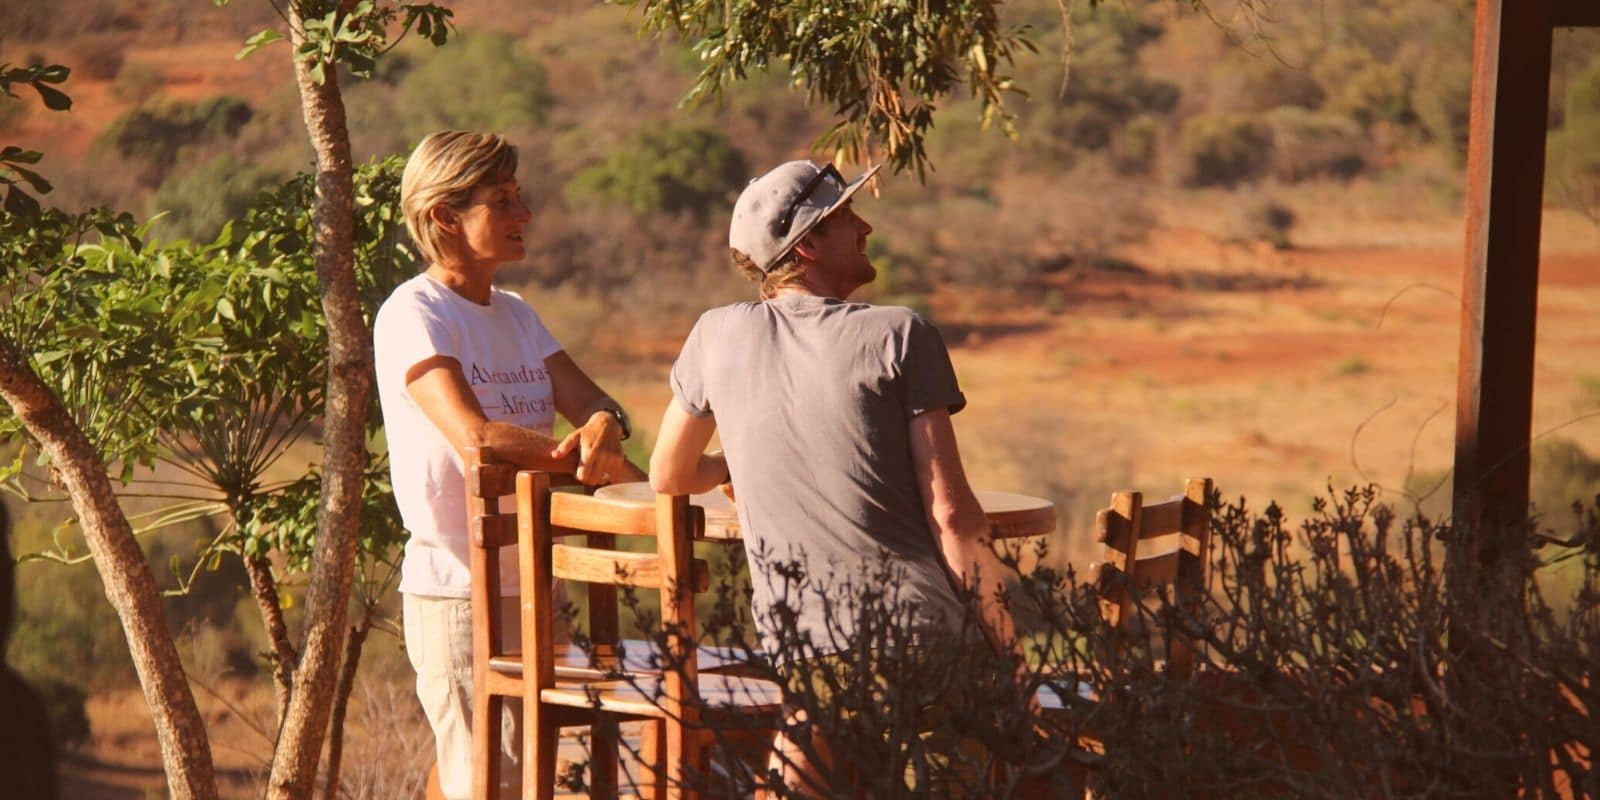 Alexandra's Africa guest chatting to a member of the team on the balcony of the lodge overlooking the valley below